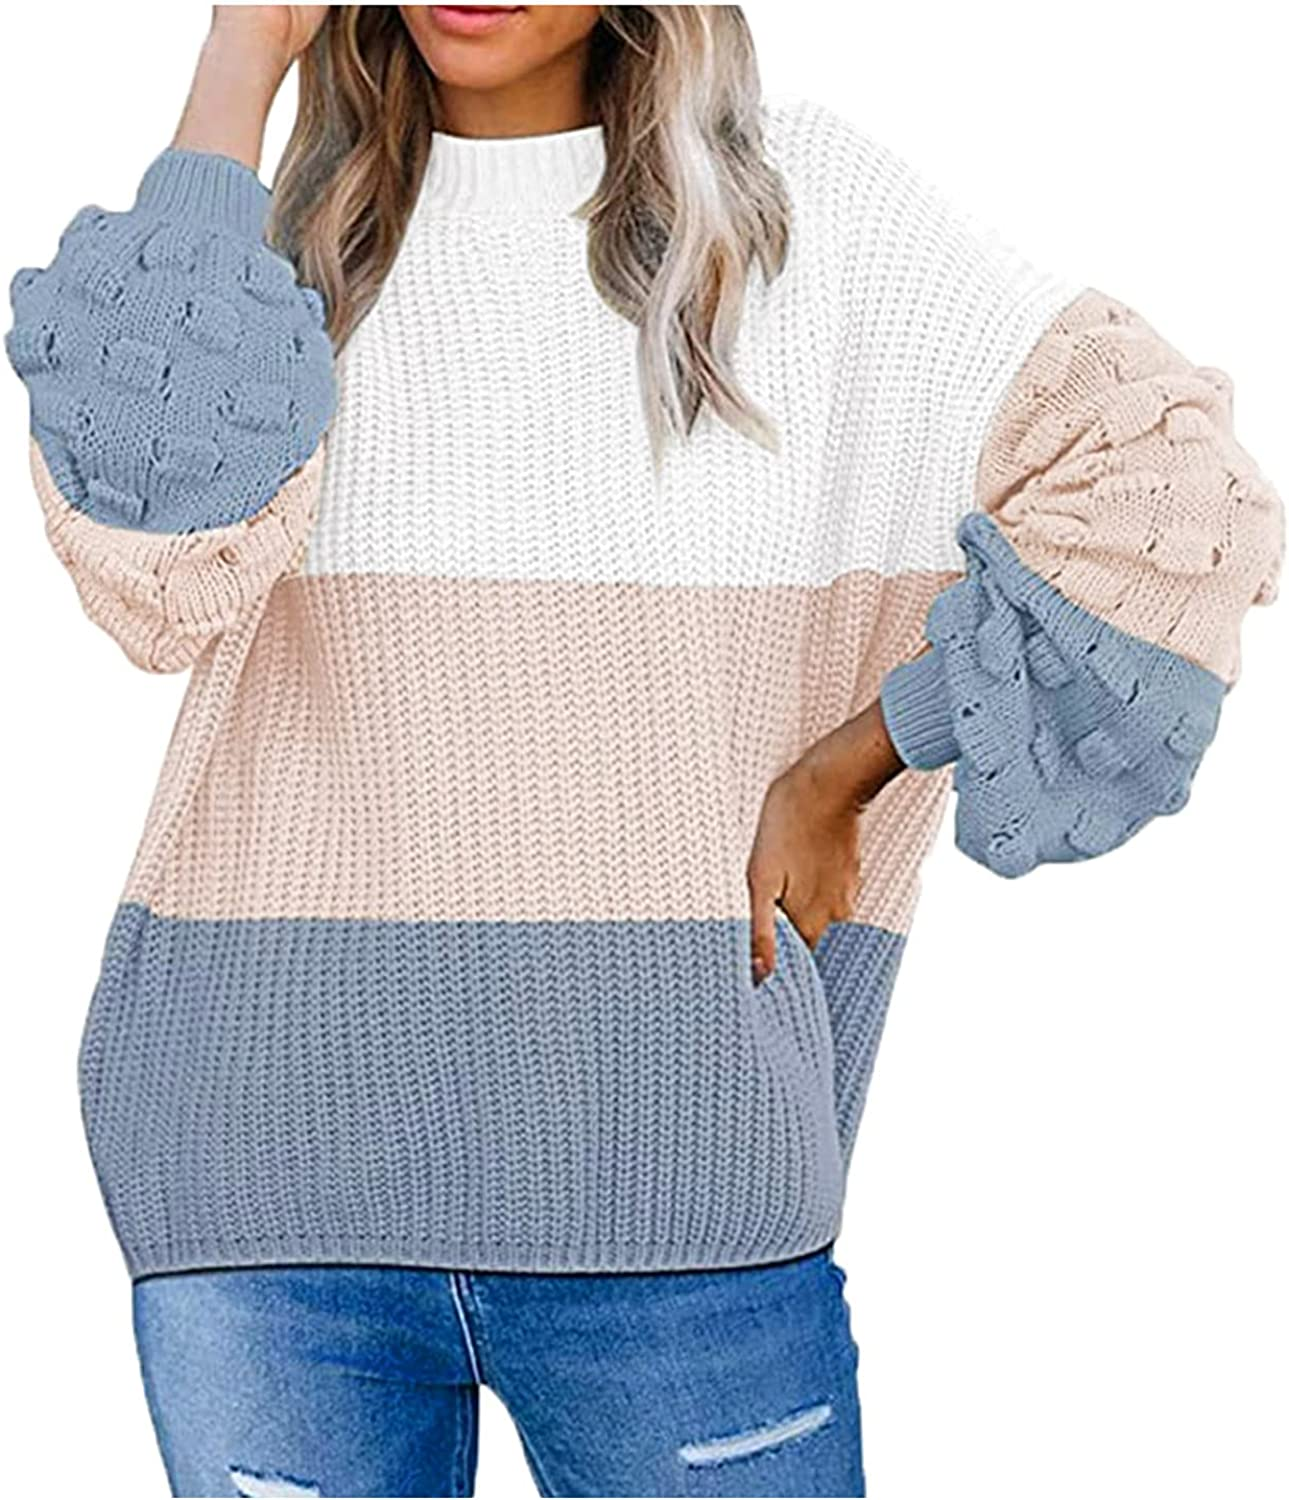 Women's Cute Oversized Crew Neck Loose Puff Sleeves Chunky Knit Pullover Sweater Color Block Striped Knitted Jumpers Tops